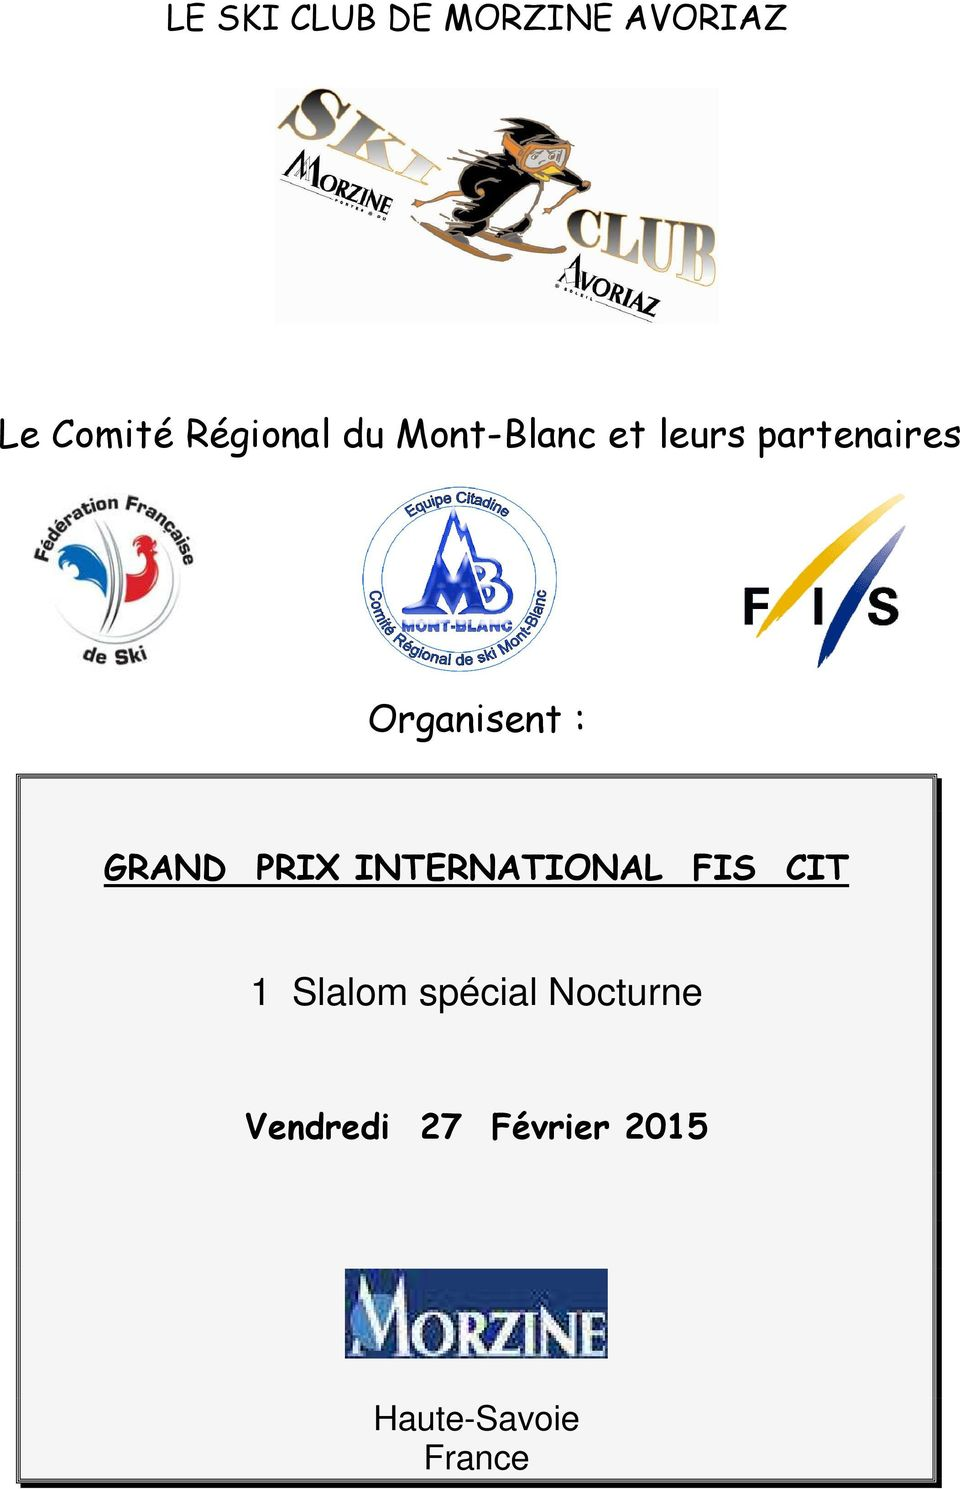 GRAND PRIX INTERNATIONAL FIS CIT 1 Slalom spécial